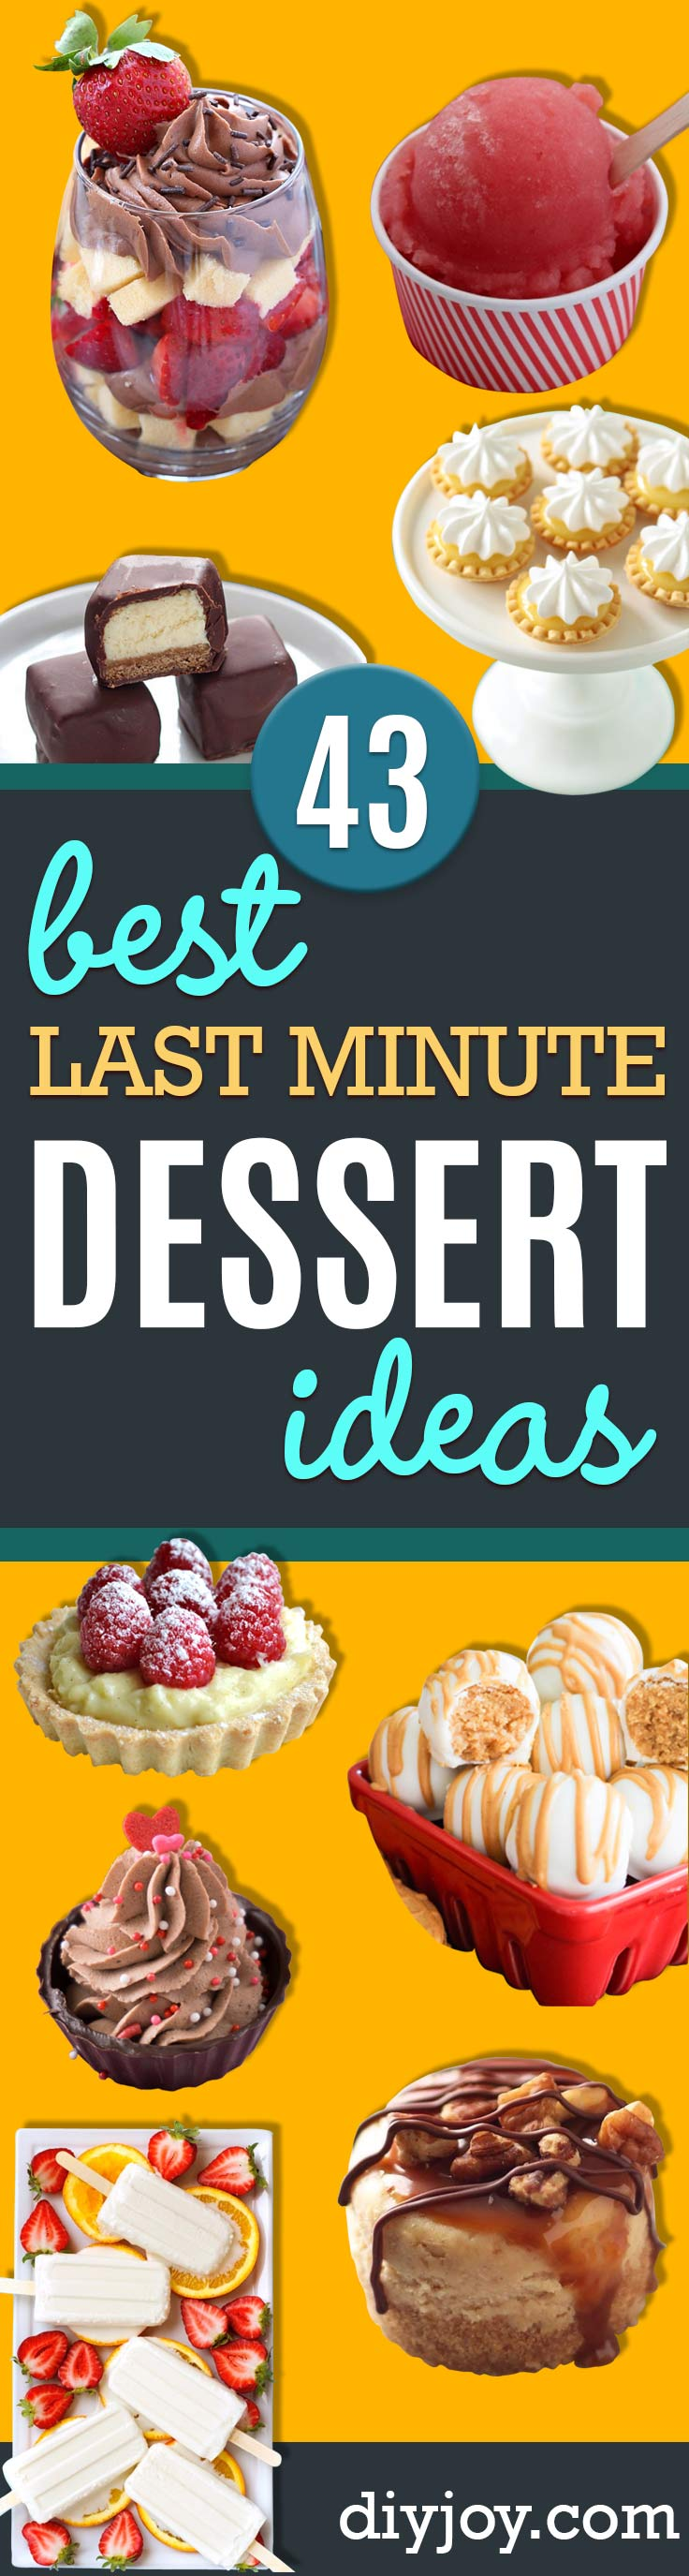 Last Minute Dessert Recipes and Ideas - Healthy and Easy Ideas for No Bake Recipe Foods, Chocolate, Peanut Butter. Best Simple Ideas for Summer, For A Crowd and for Parties